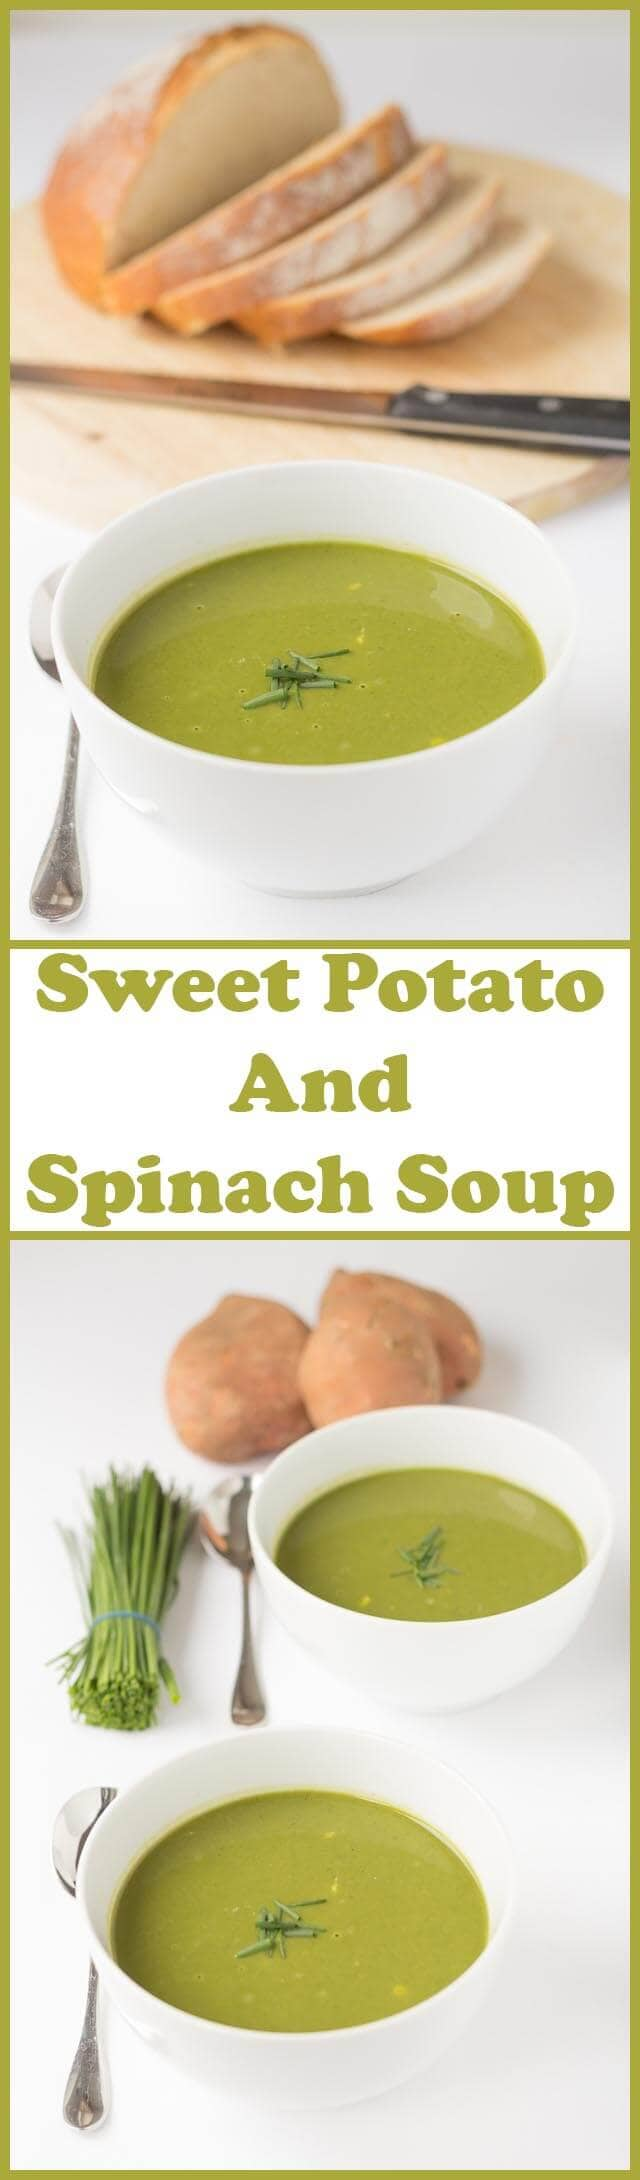 Sweet potato and spinach soup is a quick, easy, hearty and comforting soup. Nourishing, delicious and rich in flavour this healthy green soup is a perfect soup for those winter lunch moments!